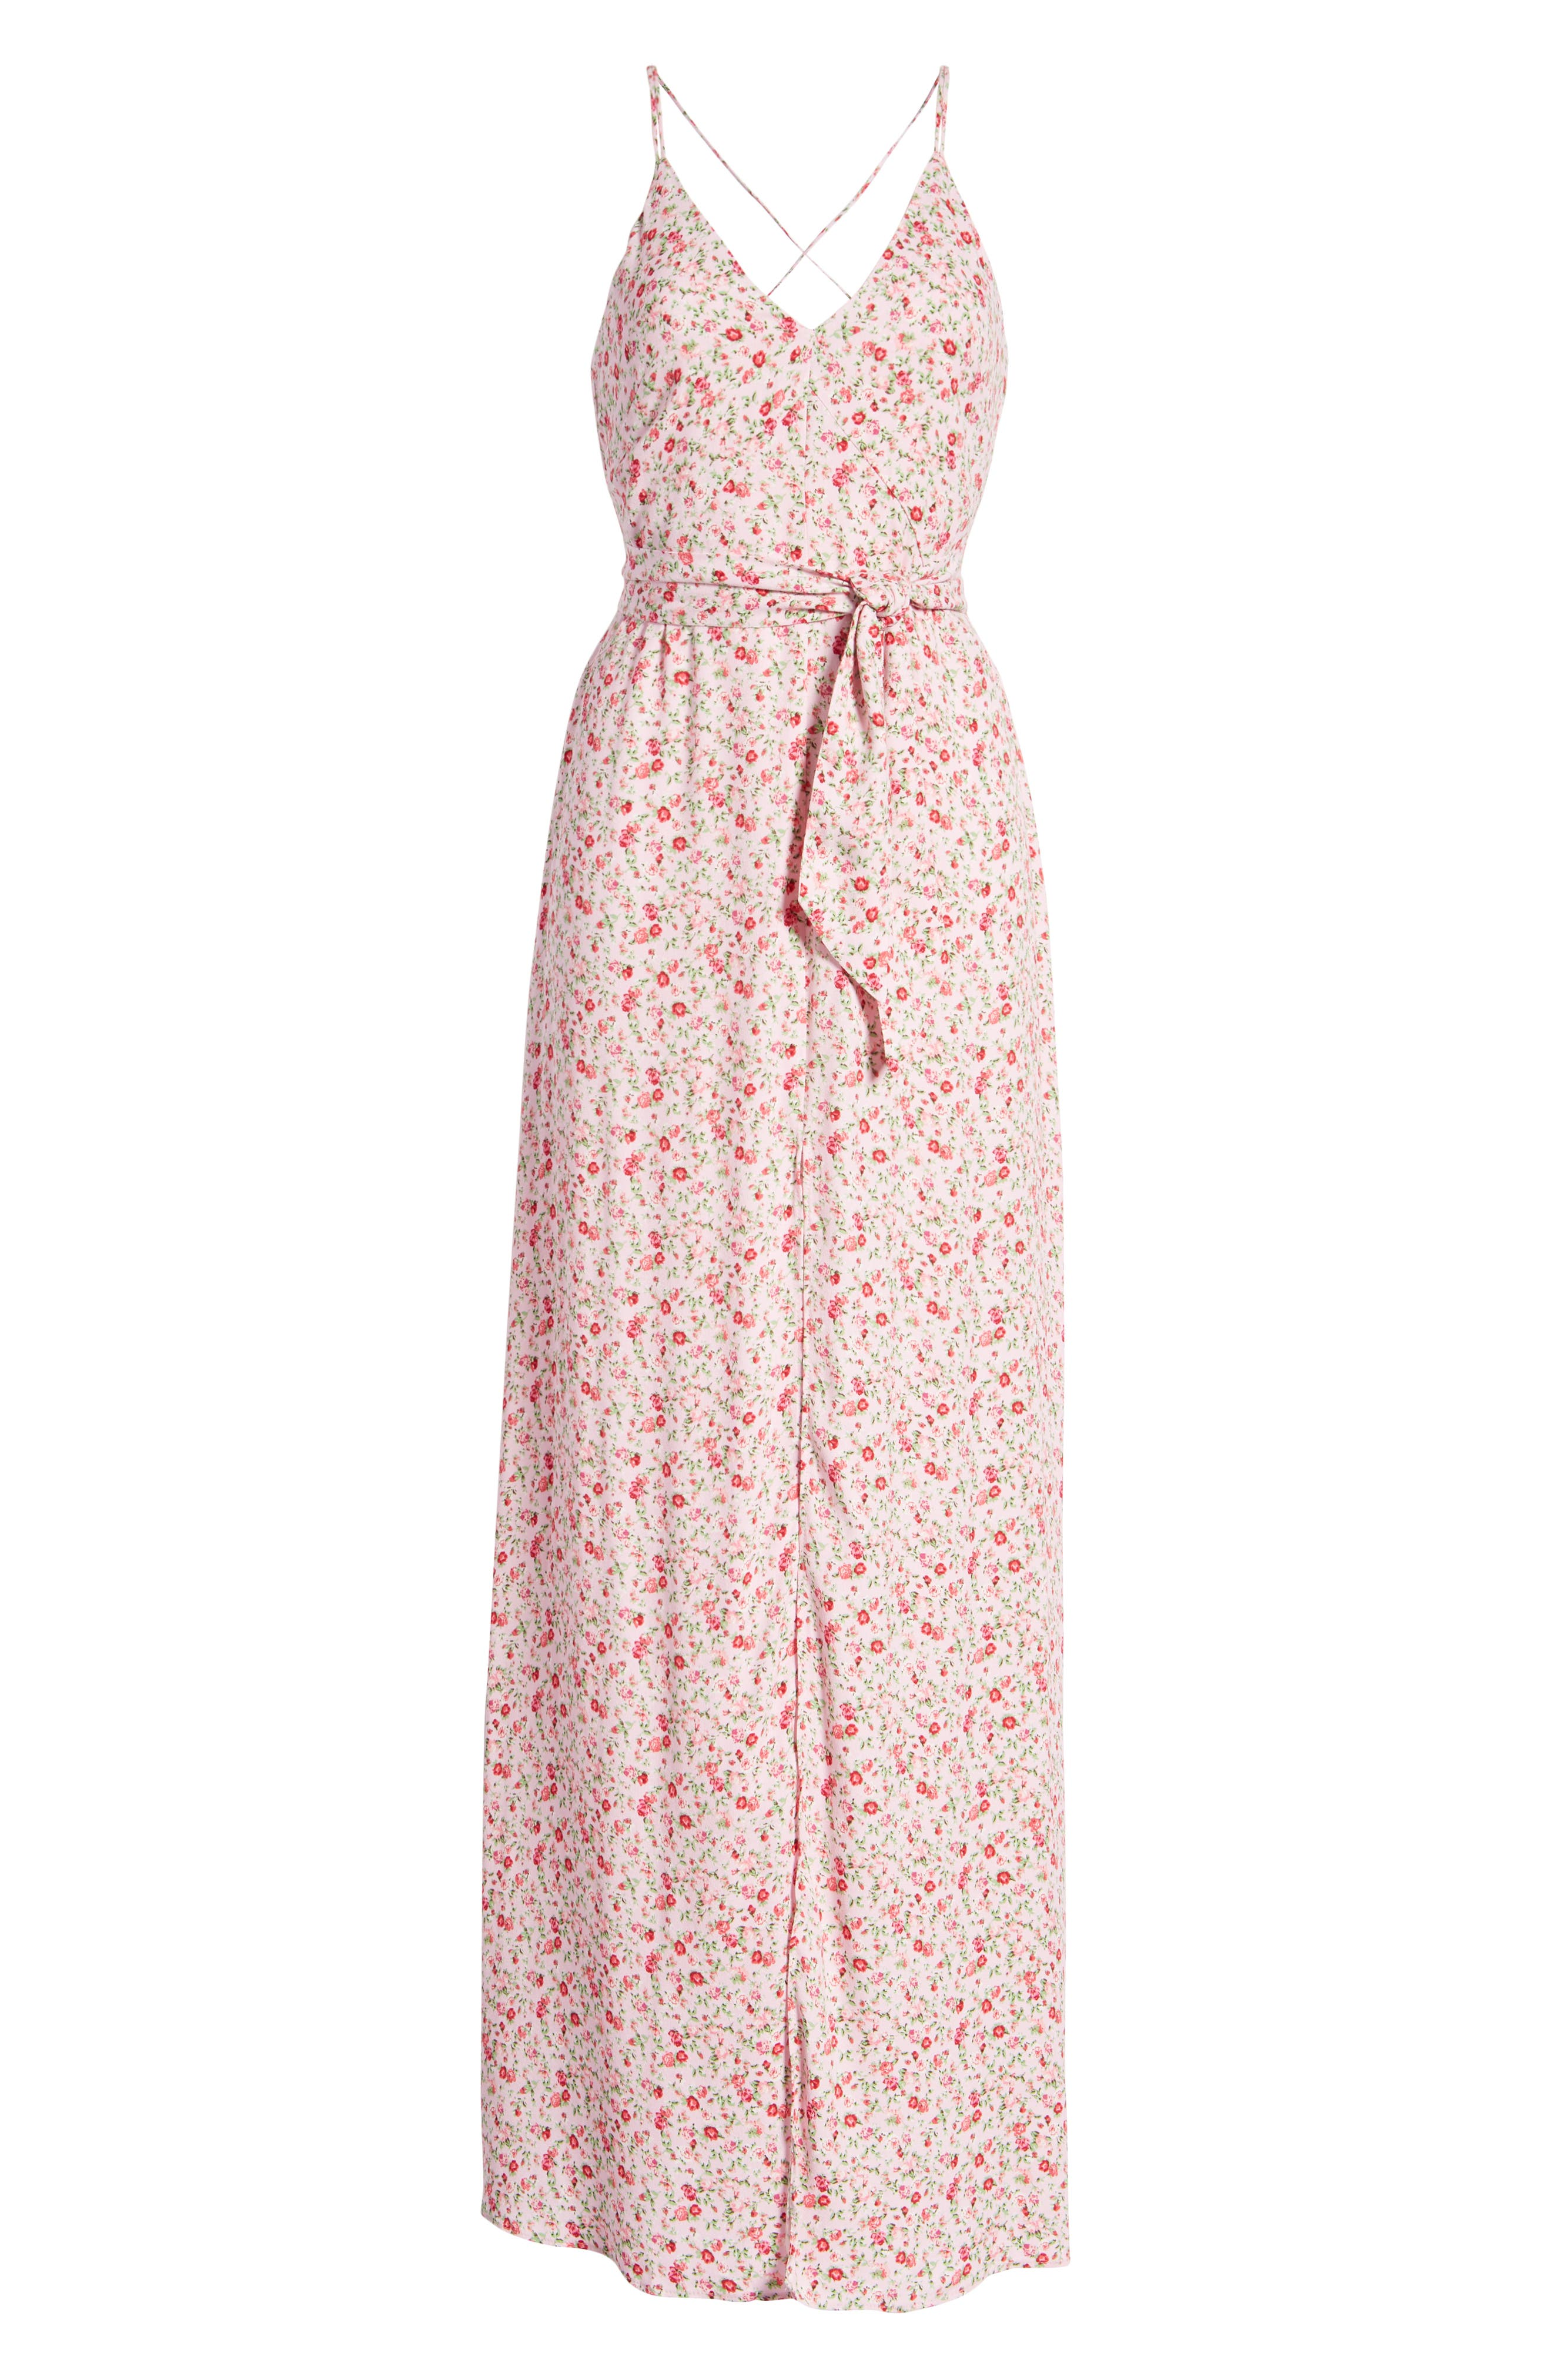 Diego Maxi Dress,                             Alternate thumbnail 7, color,                             BABY PINK DITSY